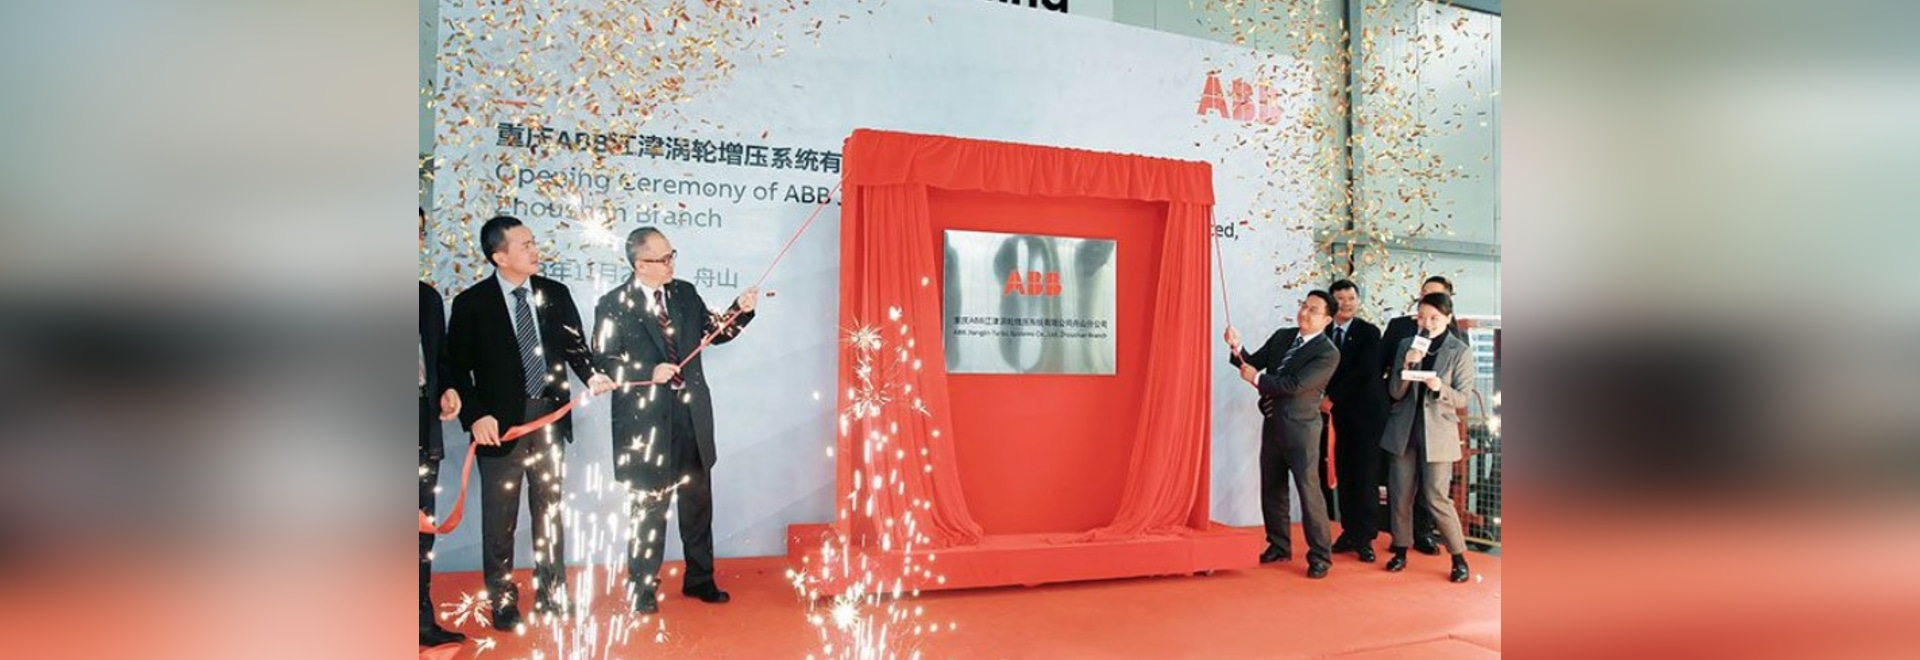 Opening of the new branch office of ABB Jiangjin Turbo Systems Co., Ltd. in Zhoushan, China